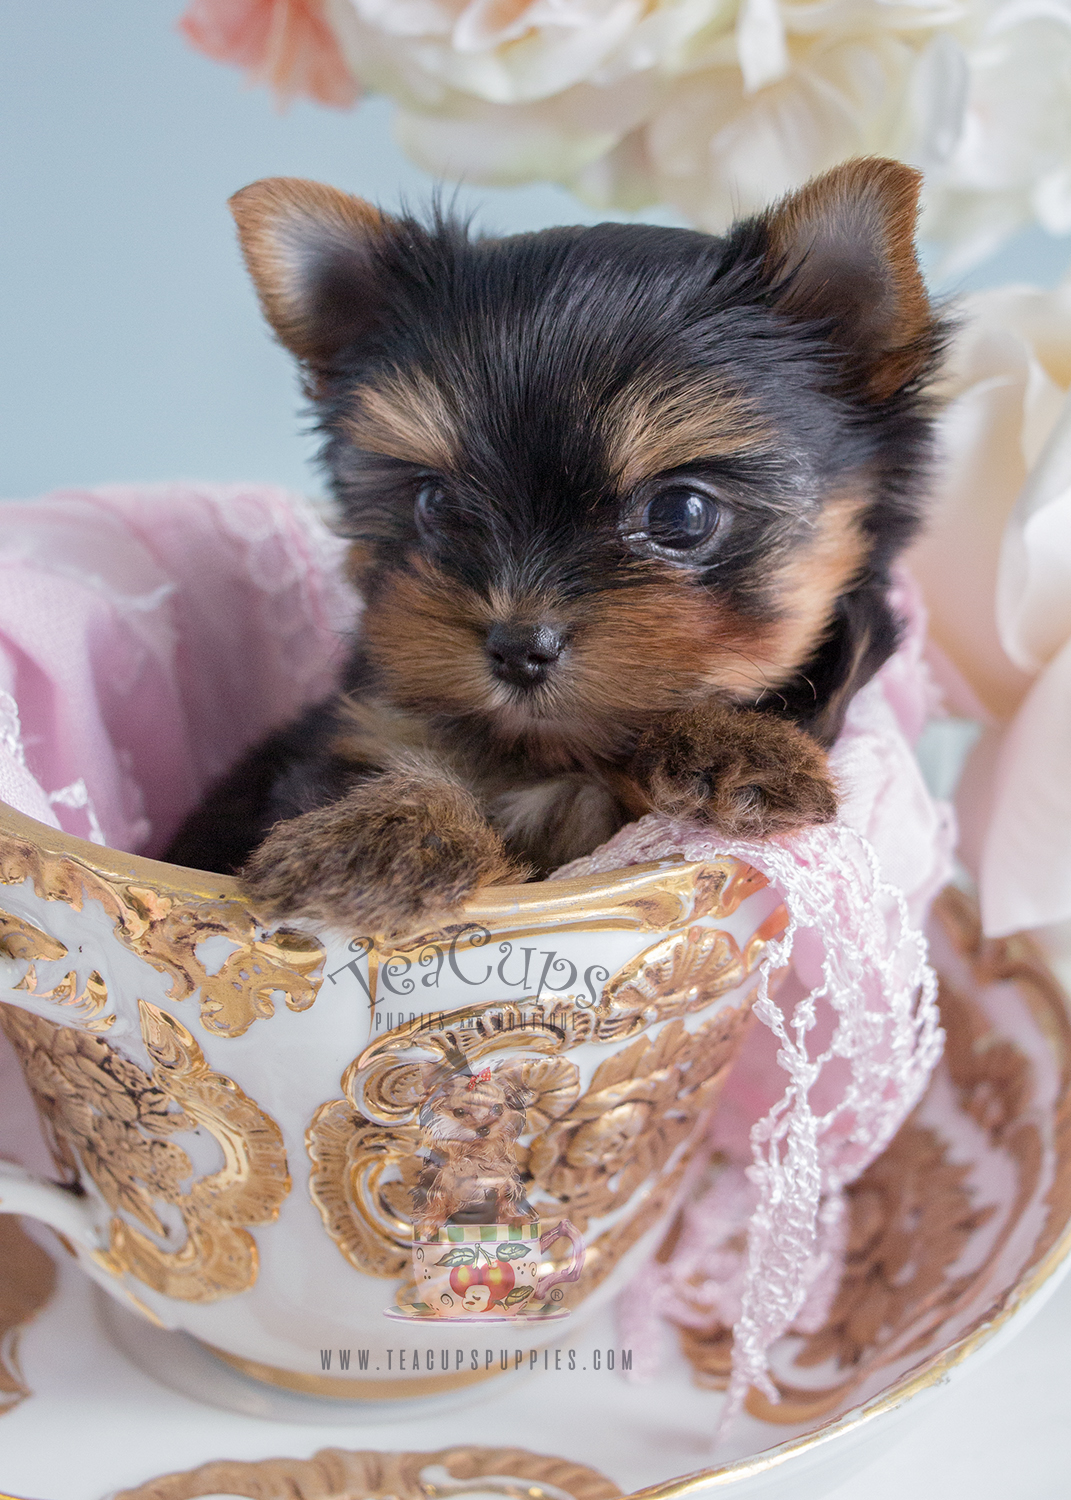 Teacup Puppies Teacup Yorkie Puppy For Sale #233